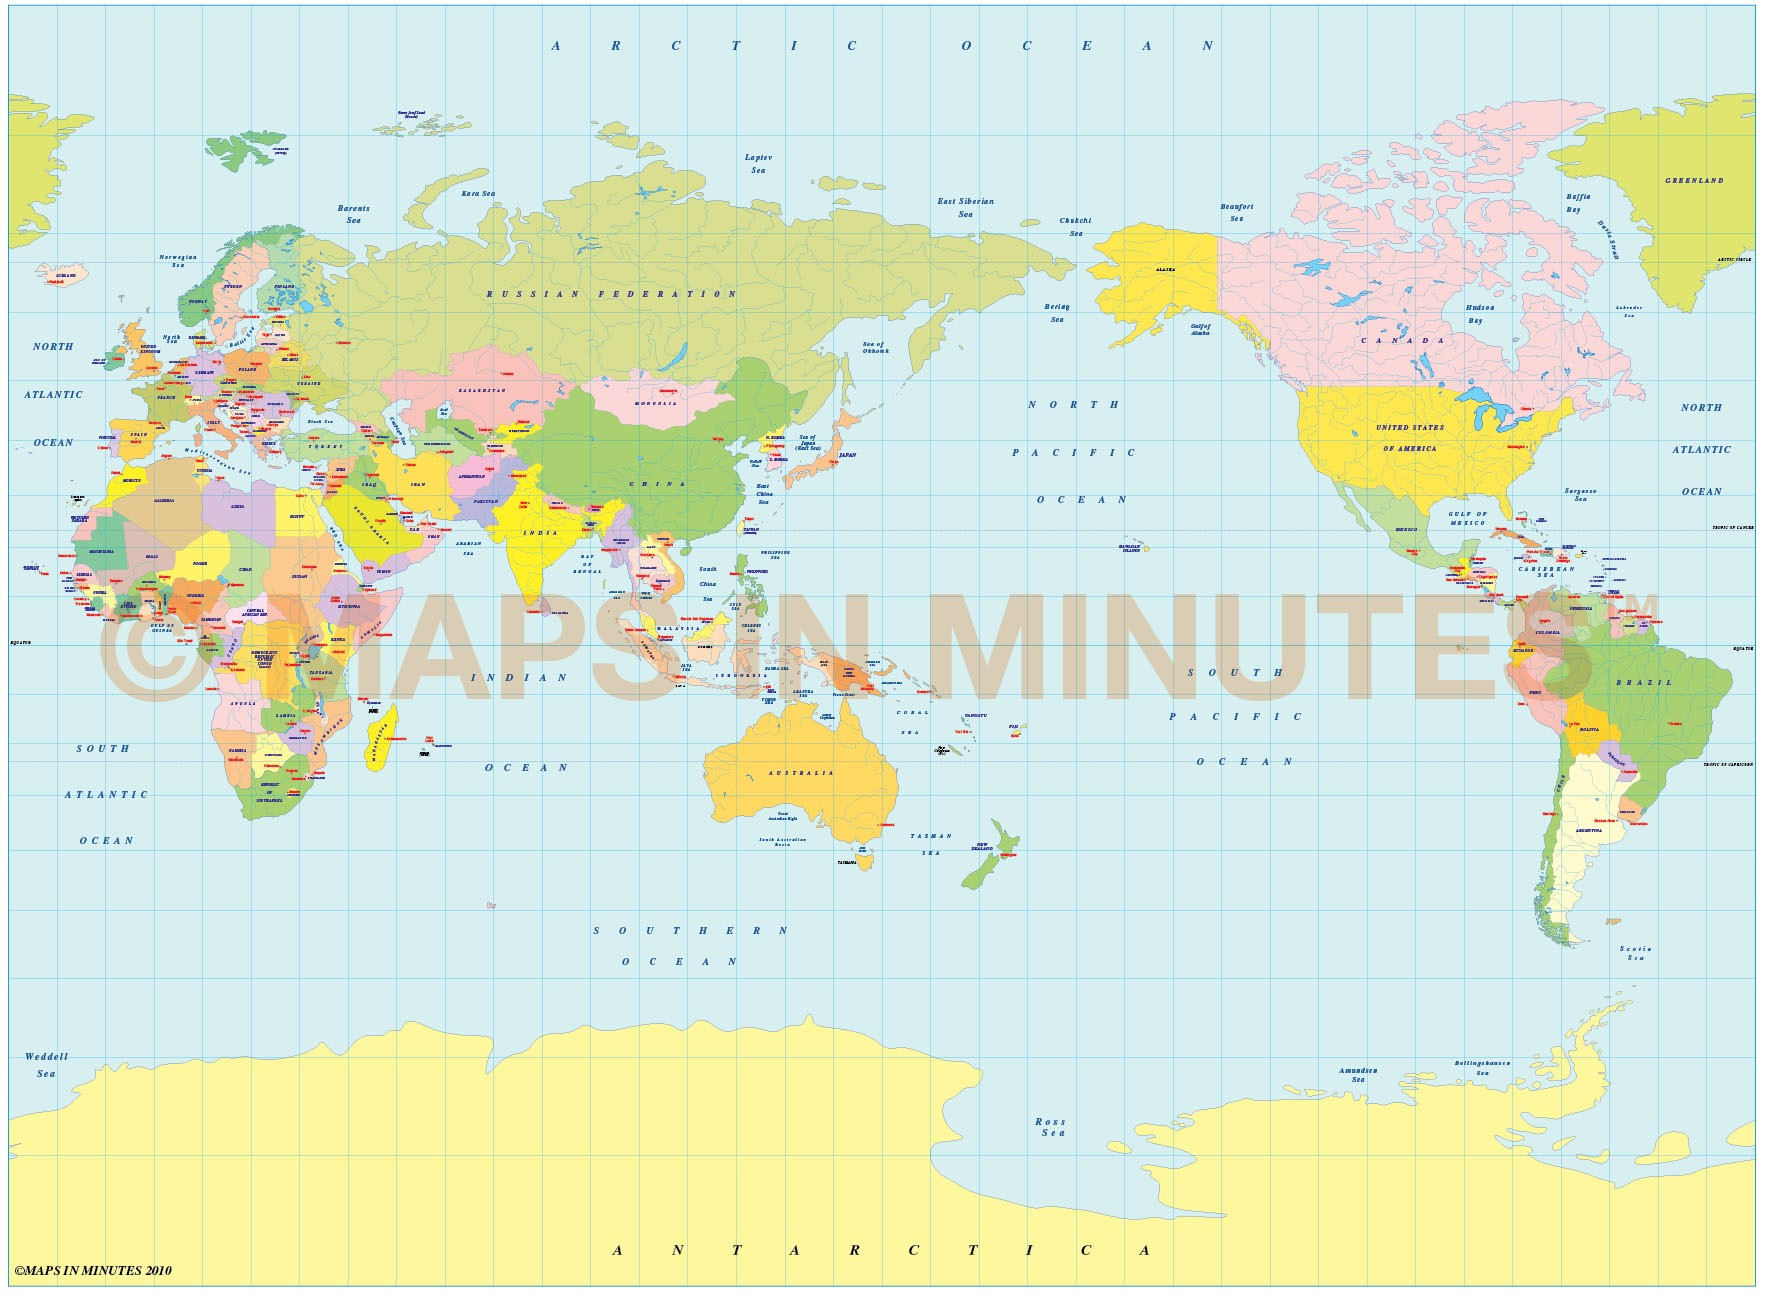 Vector world map miller projection political map small scale japan vector world map miller projection 100m scale japan centric gumiabroncs Images